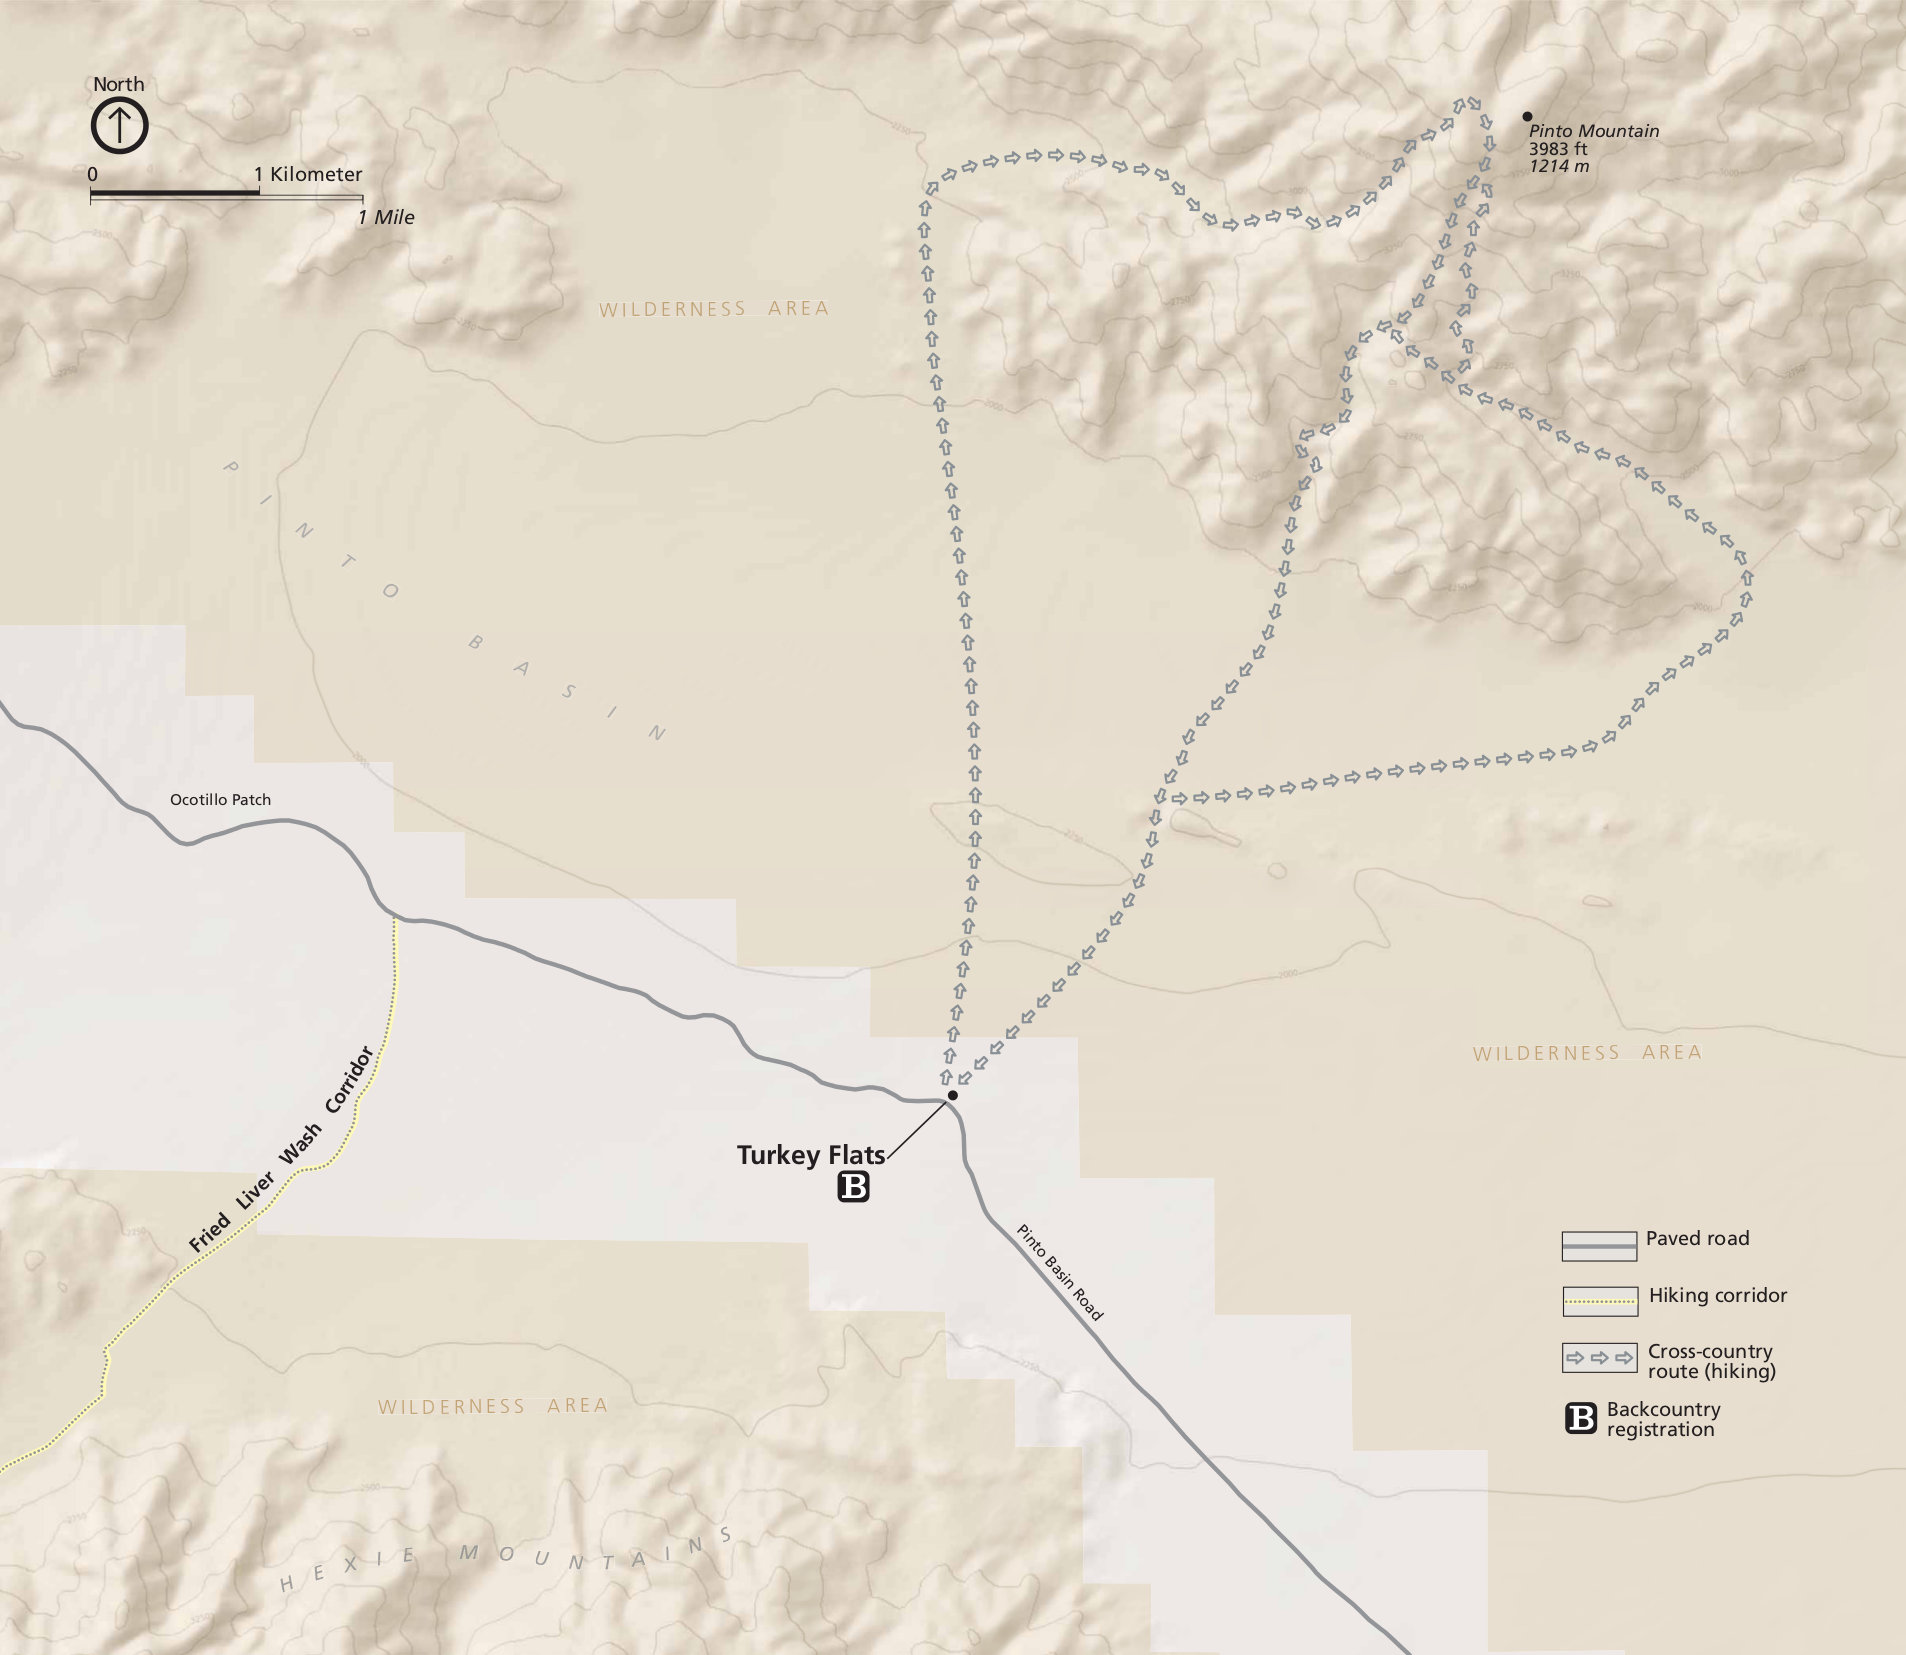 File:NPS joshua-tree-turkey-flats-board-map.jpg - Wikimedia Commons